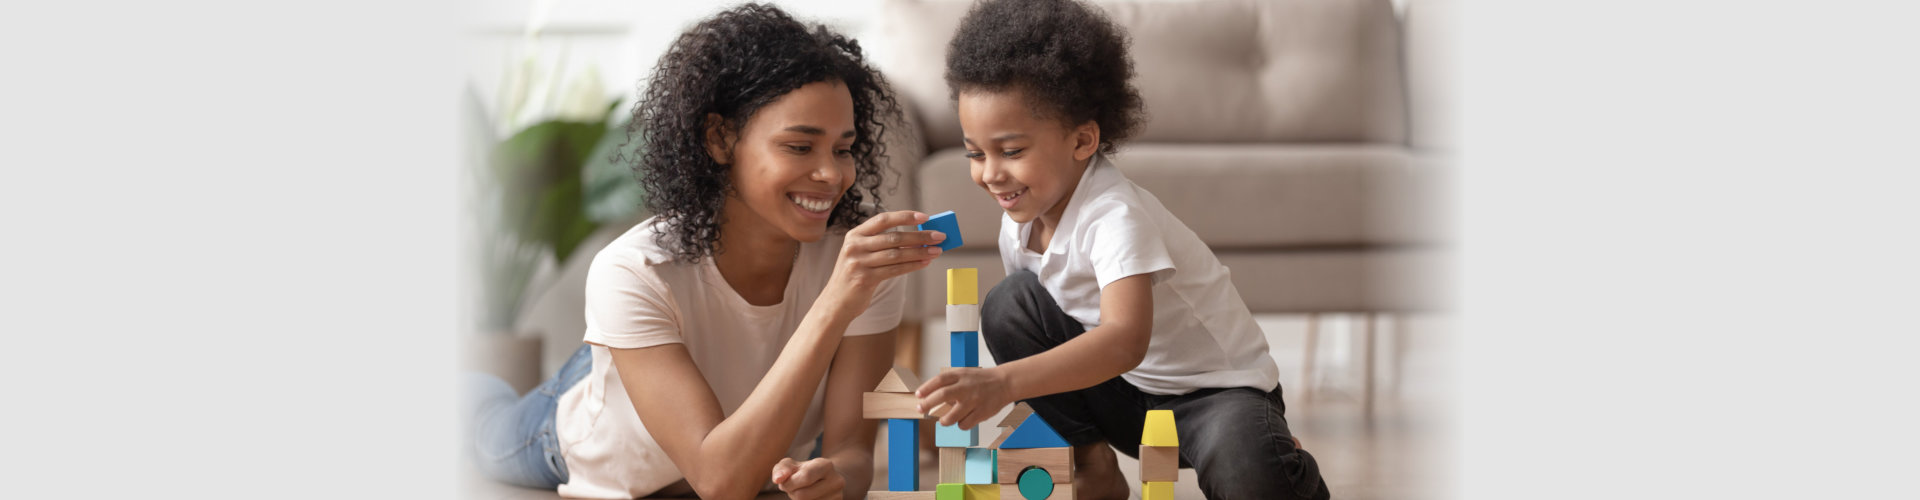 smiling woman assisting little boy play